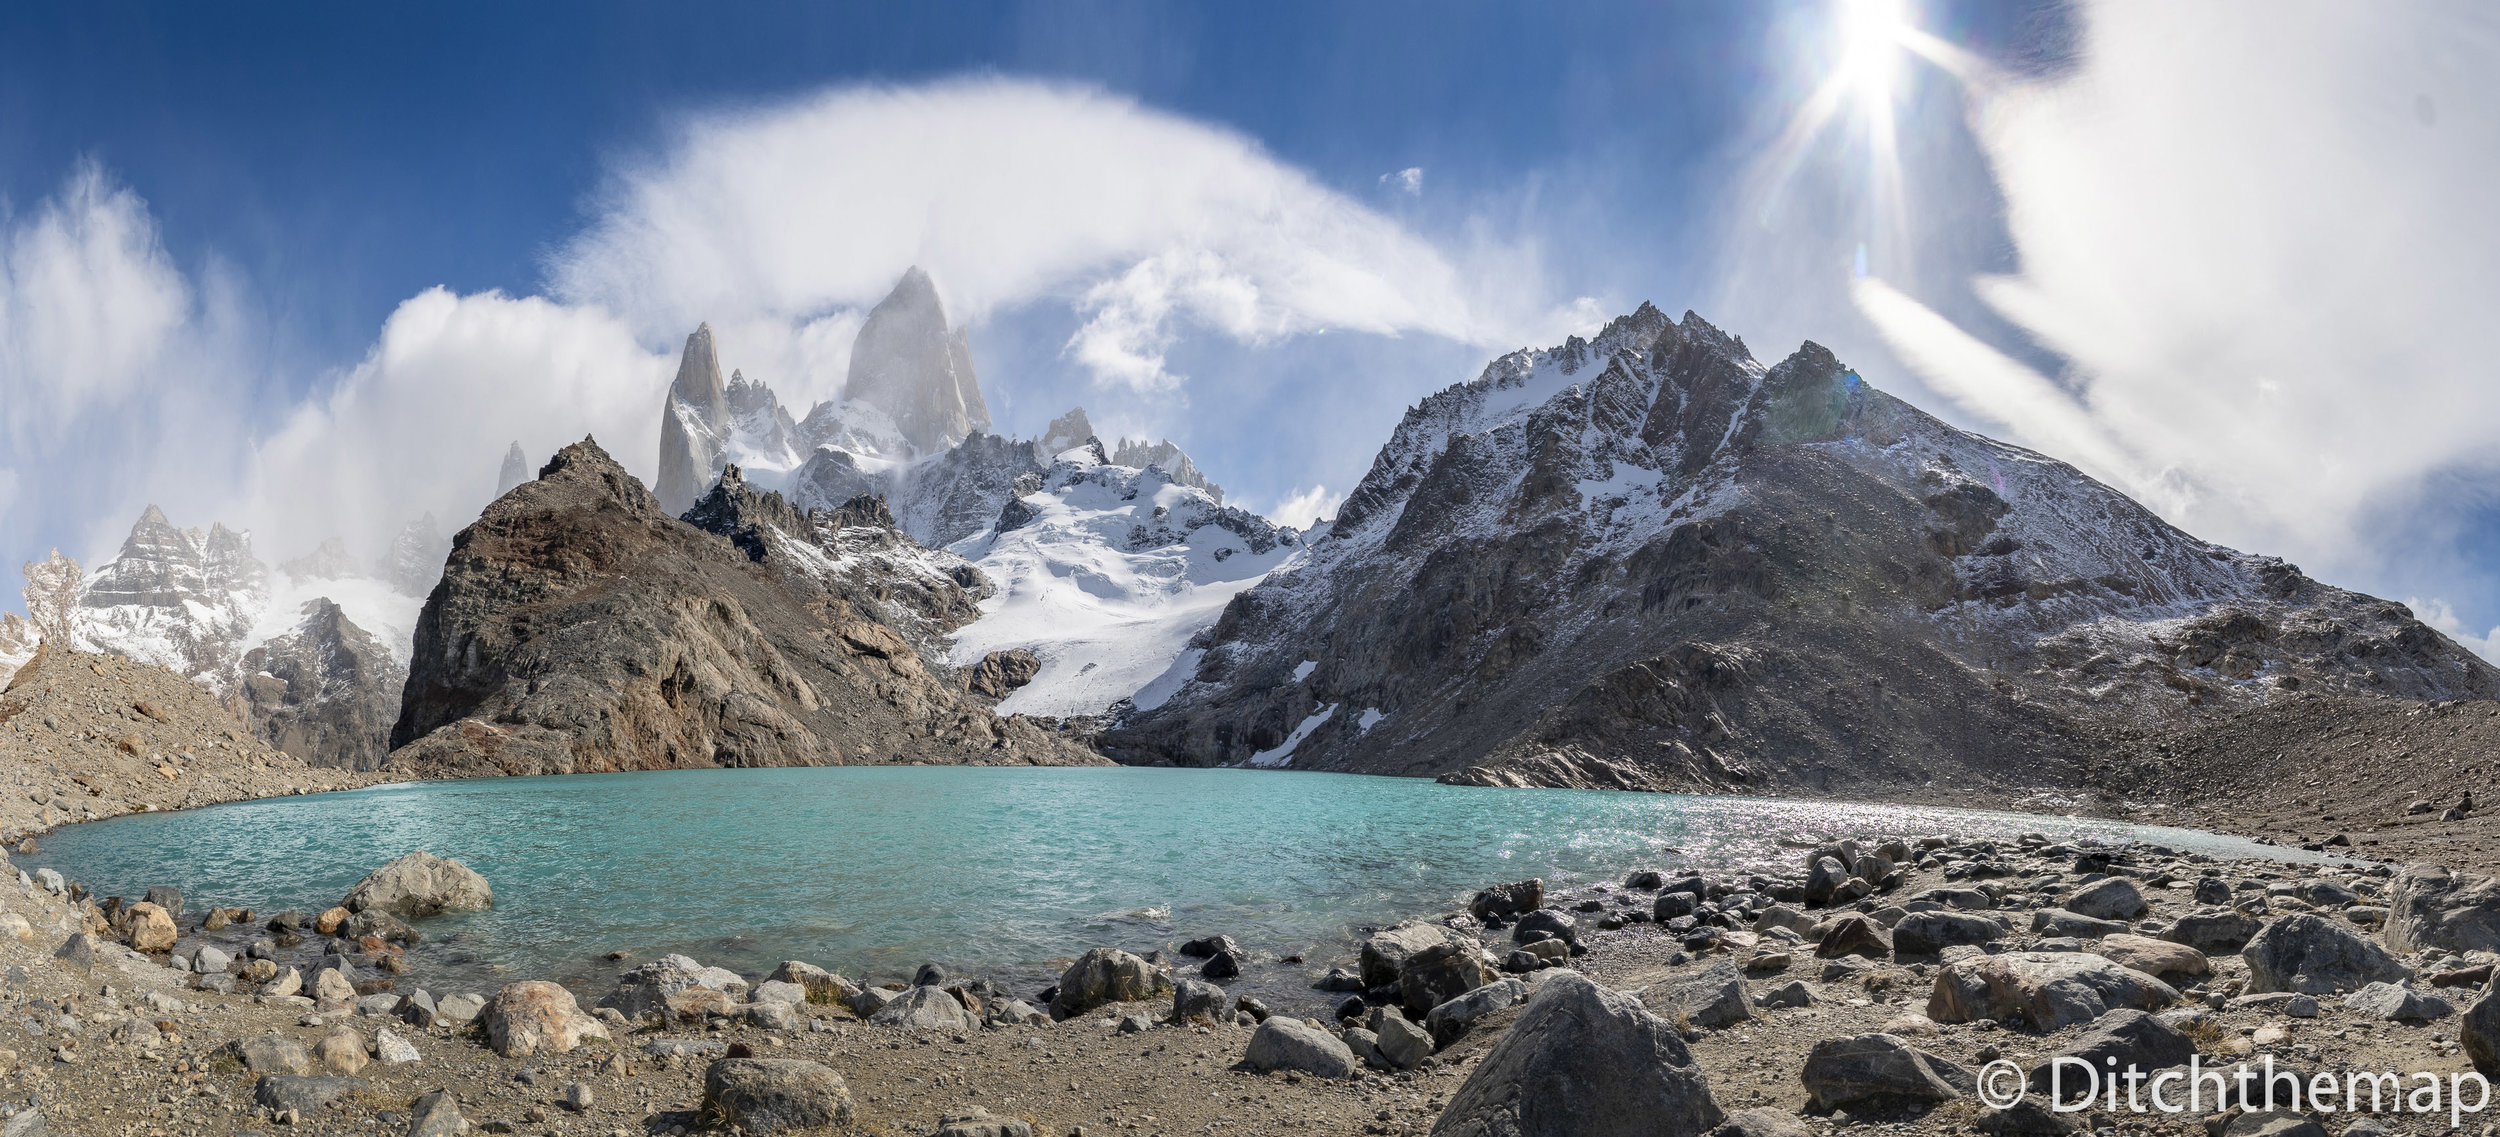 Panoramic View of Mt. Fitz Roy and Lake